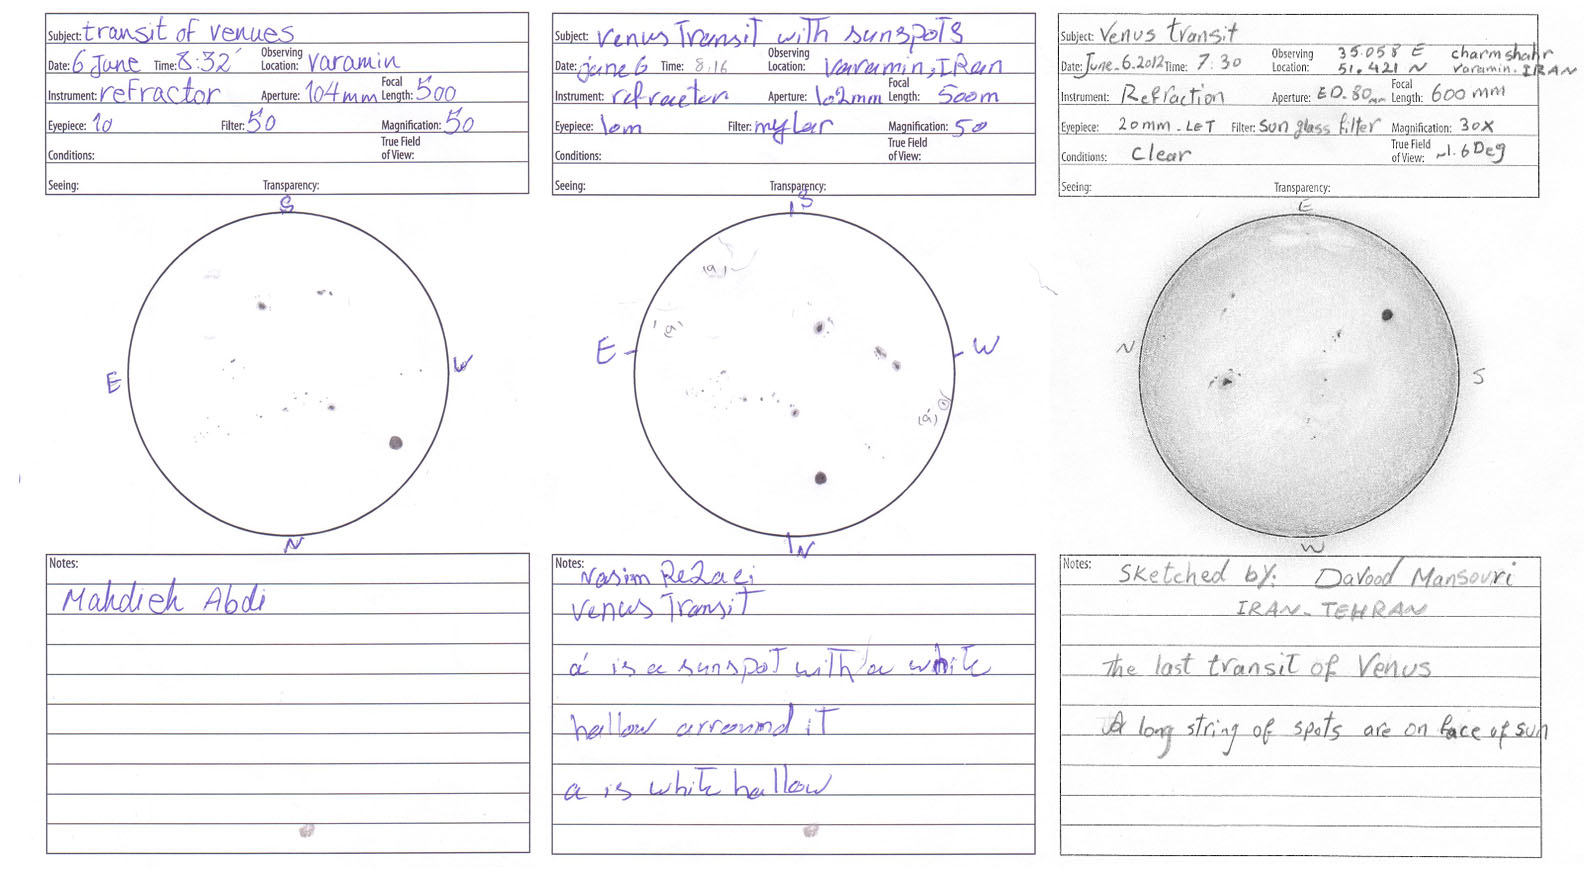 Venus Transit - Three Views